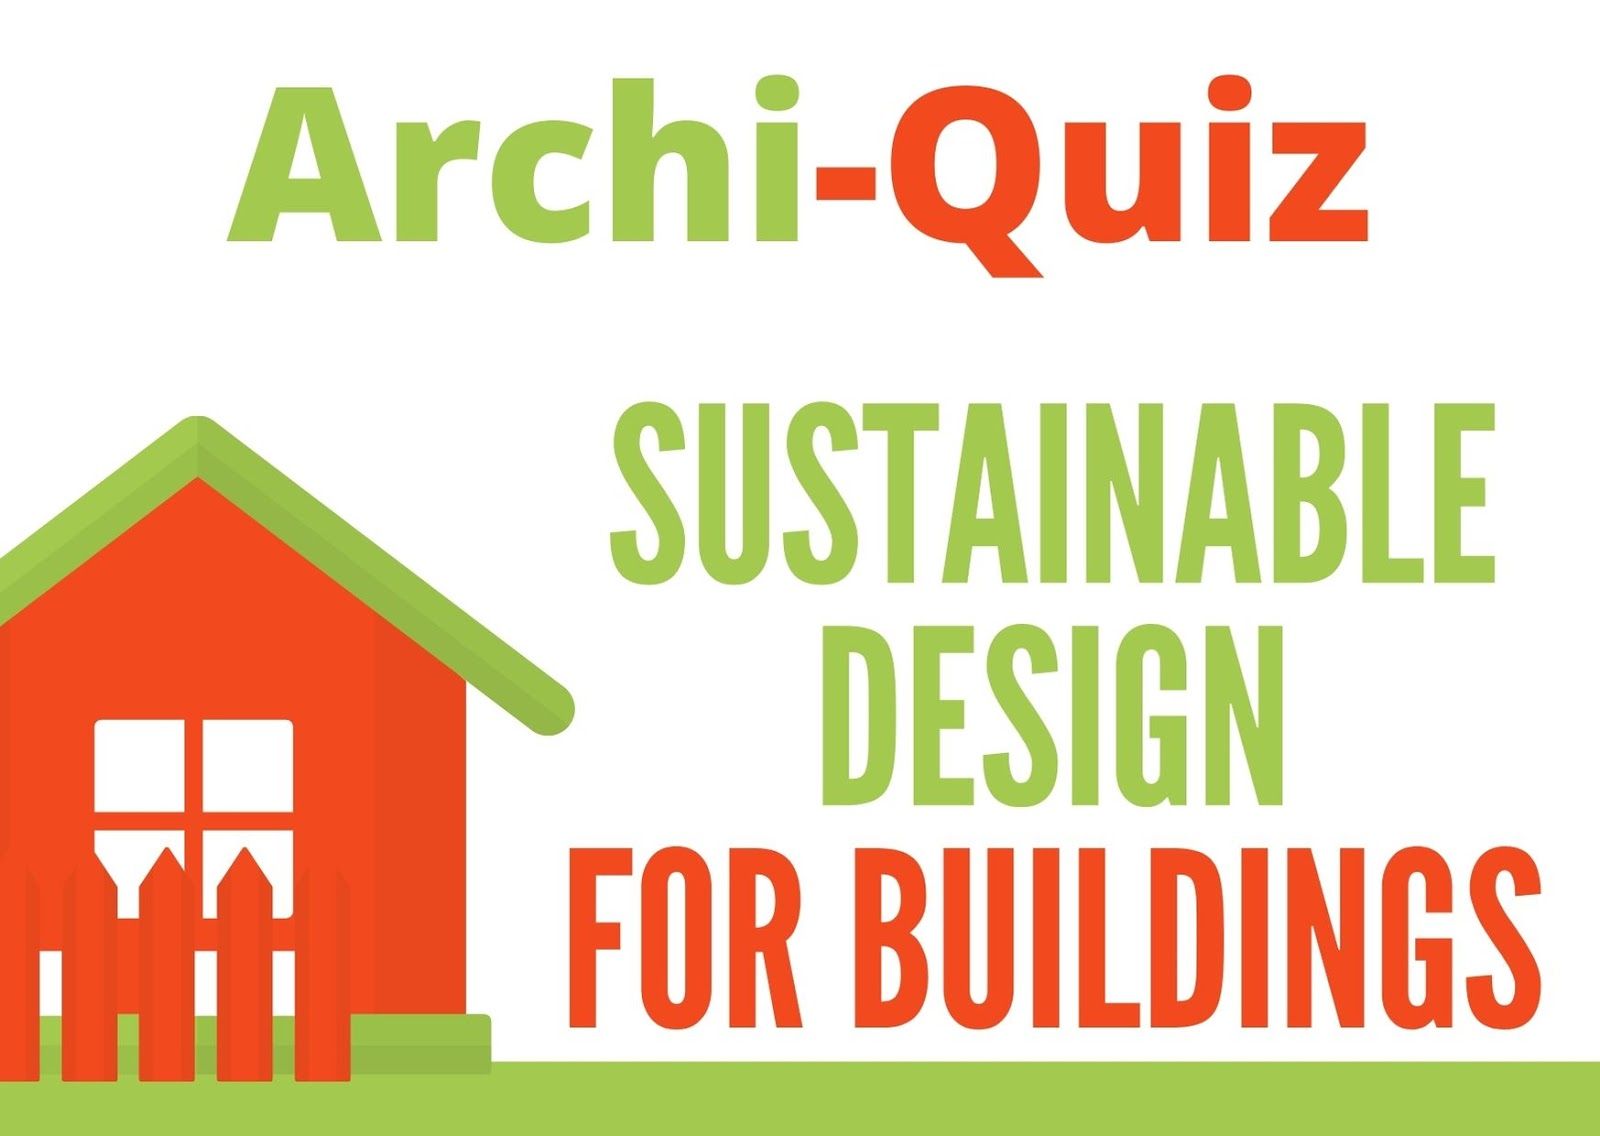 sustainable-design,sustainable-design-build,sustainable-architecture,sustainable-architecture-firms-in-bangalore,sustainable-architecture-lessons-from-the-ant-reading-answers,sustainable-architecture-masters,sustainable-architecture-in-india,sustainable-architecture-concept,what-is-sustainable-architecture,sustainable-architecture-materials,